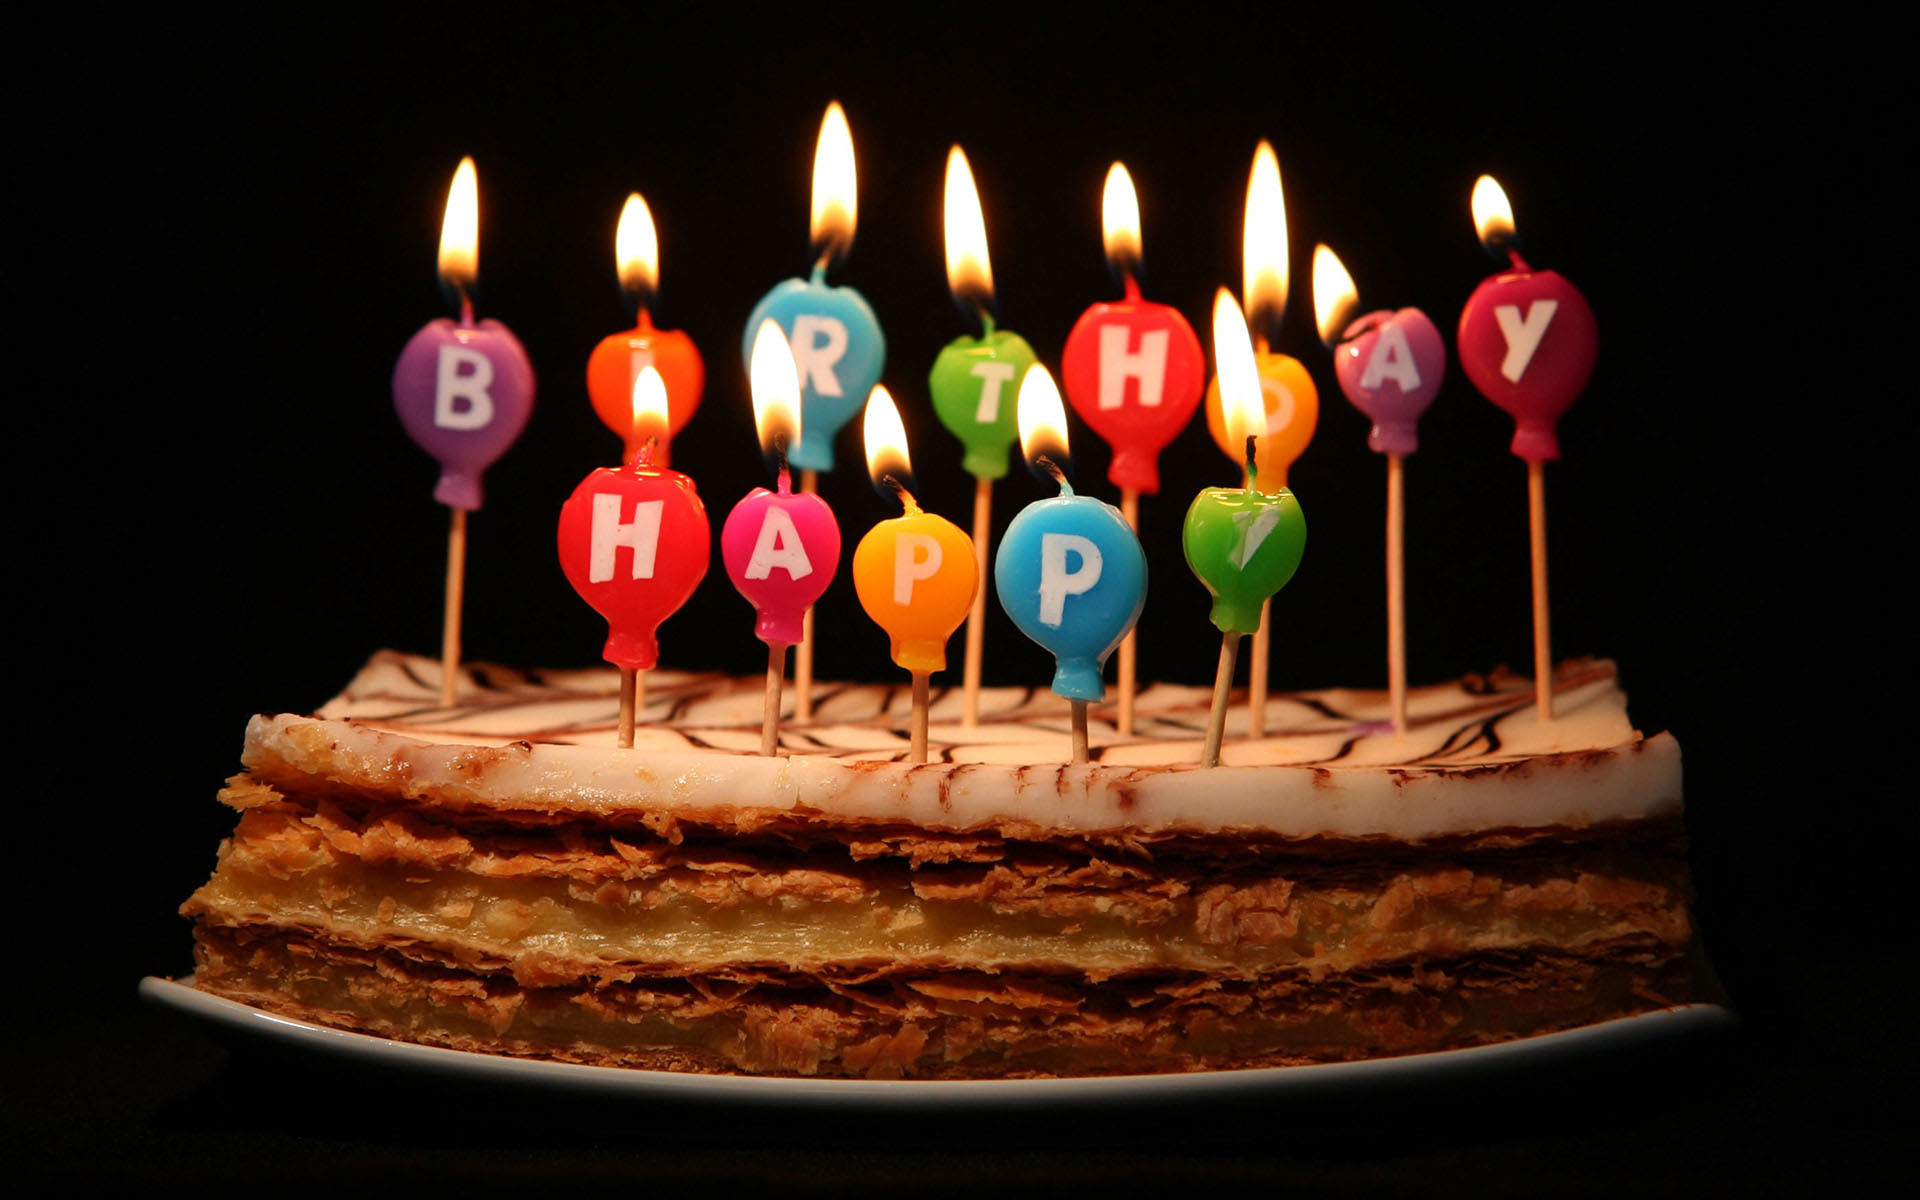 Best ideas about Image Birthday Cake . Save or Pin Happy Birthday Cake Now.